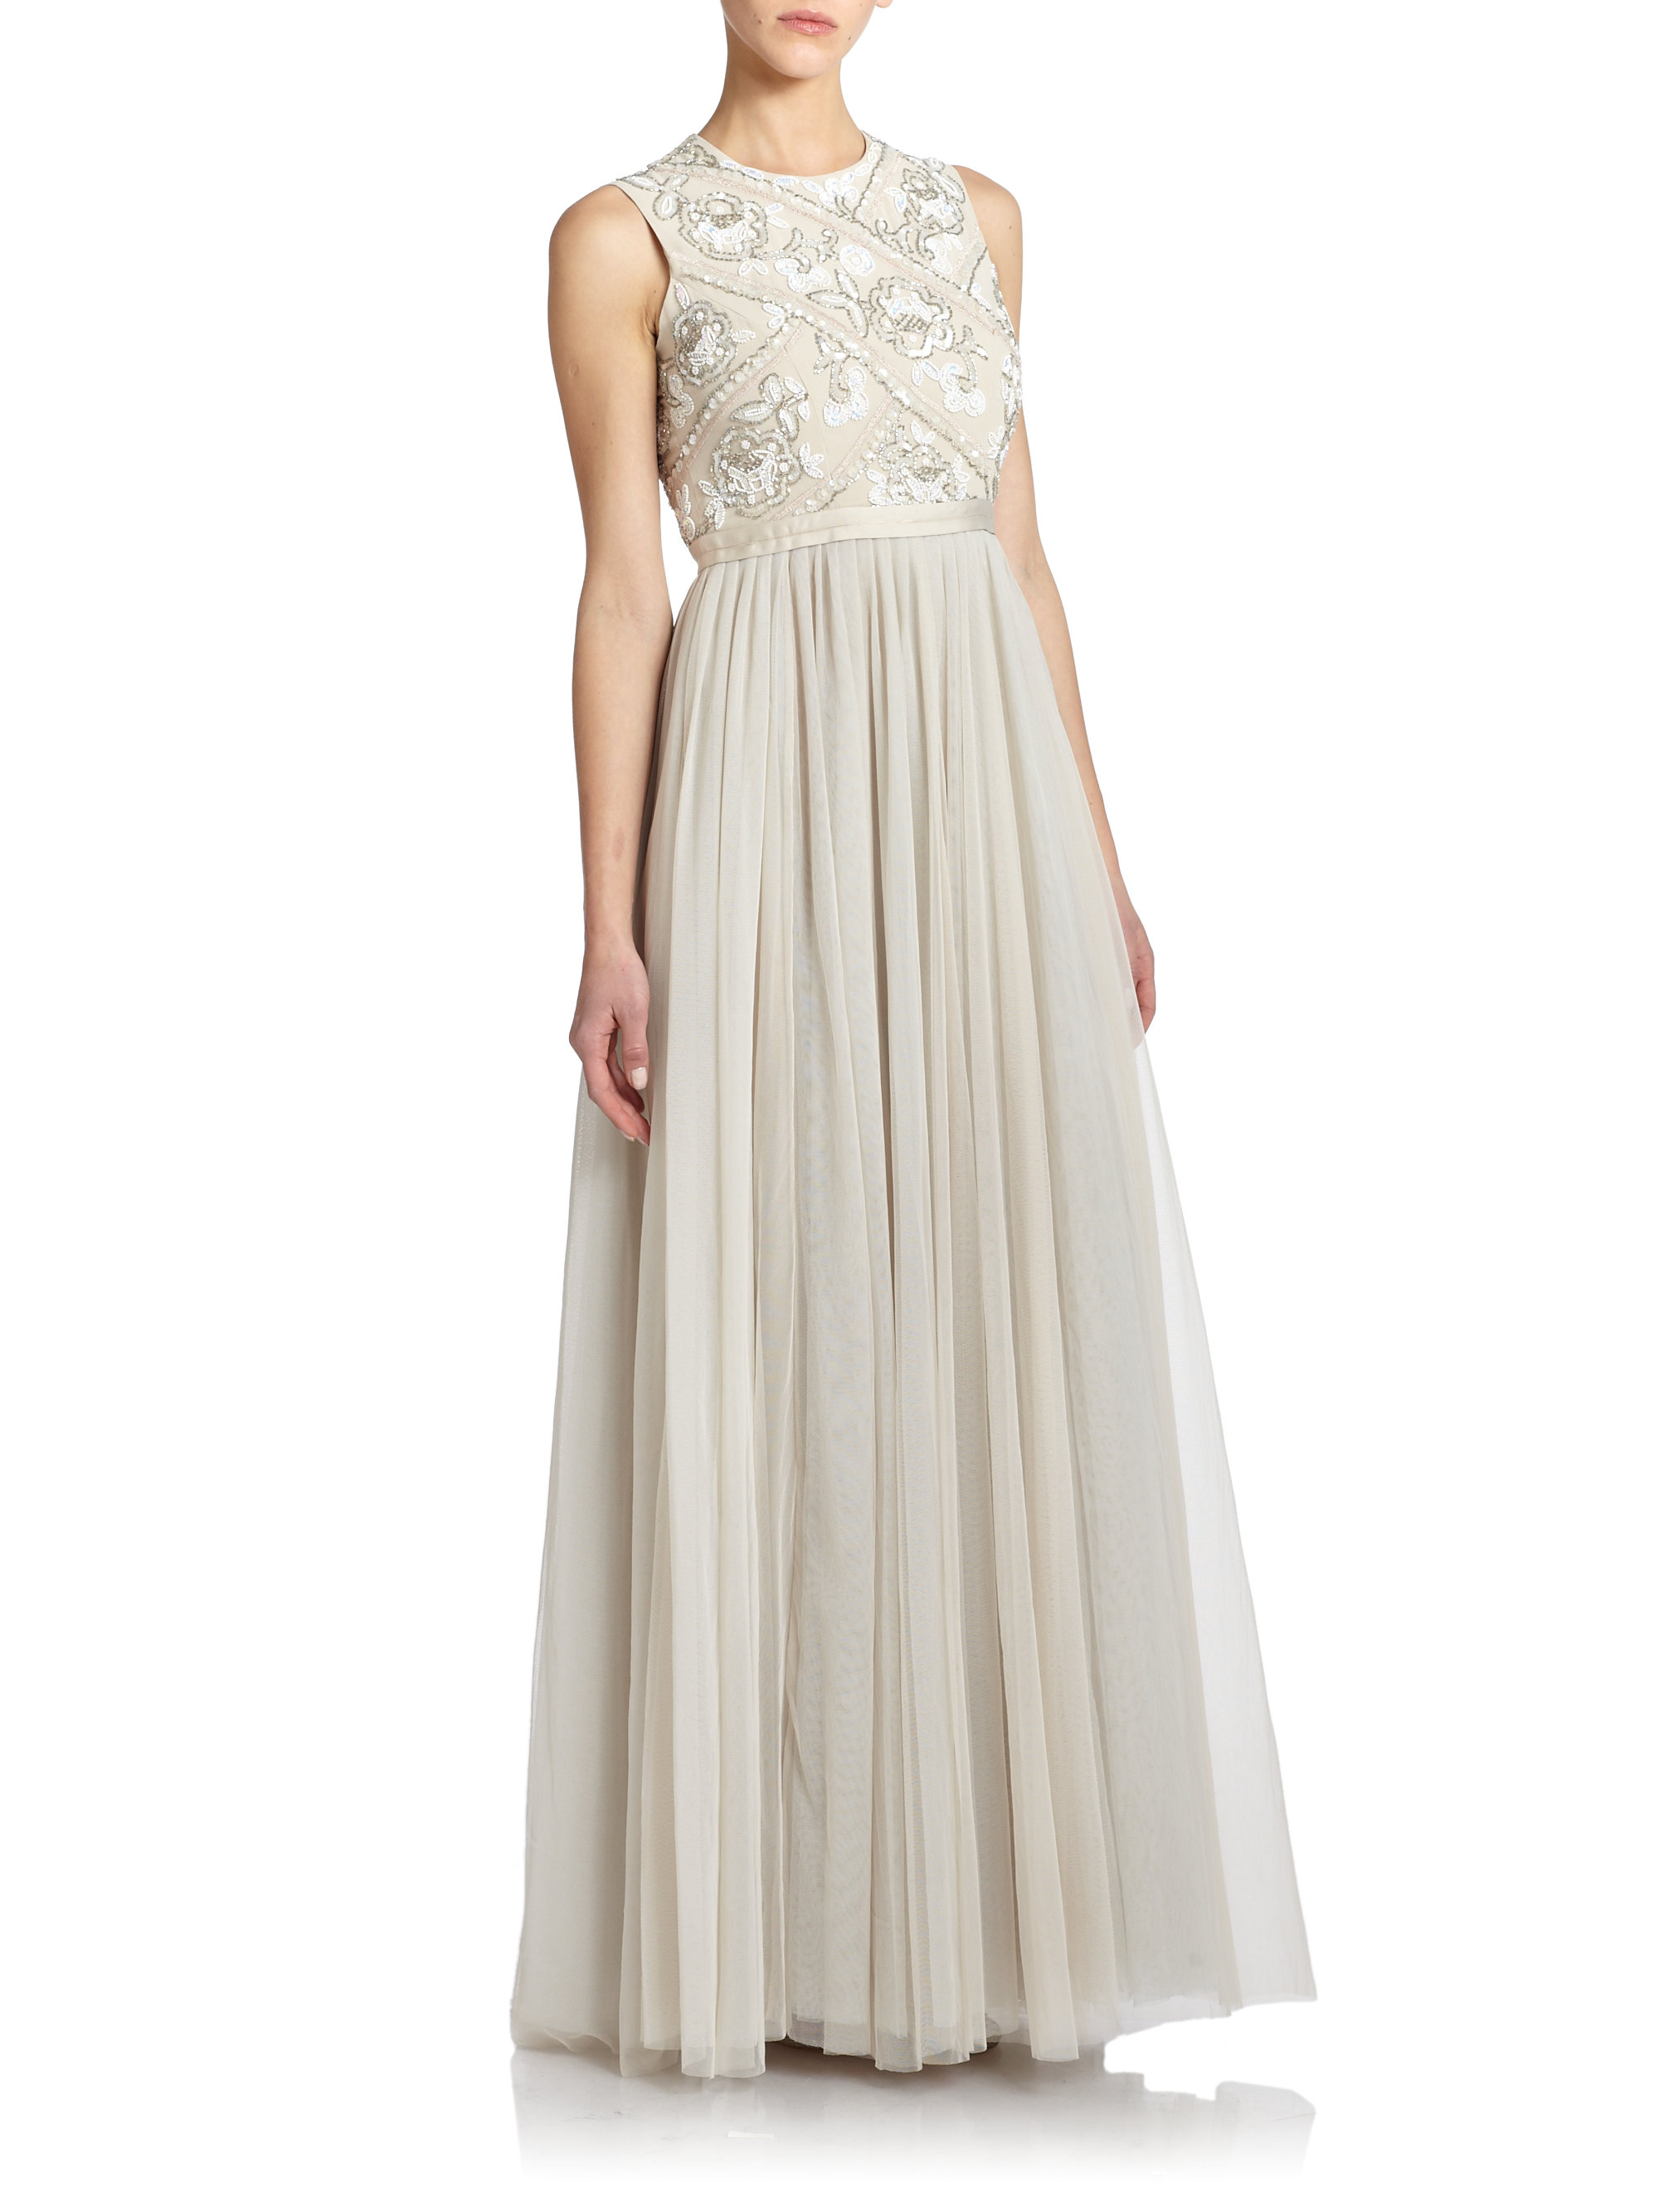 Needle Amp Thread Floral Embellished Maxi Dress In Pink Lyst